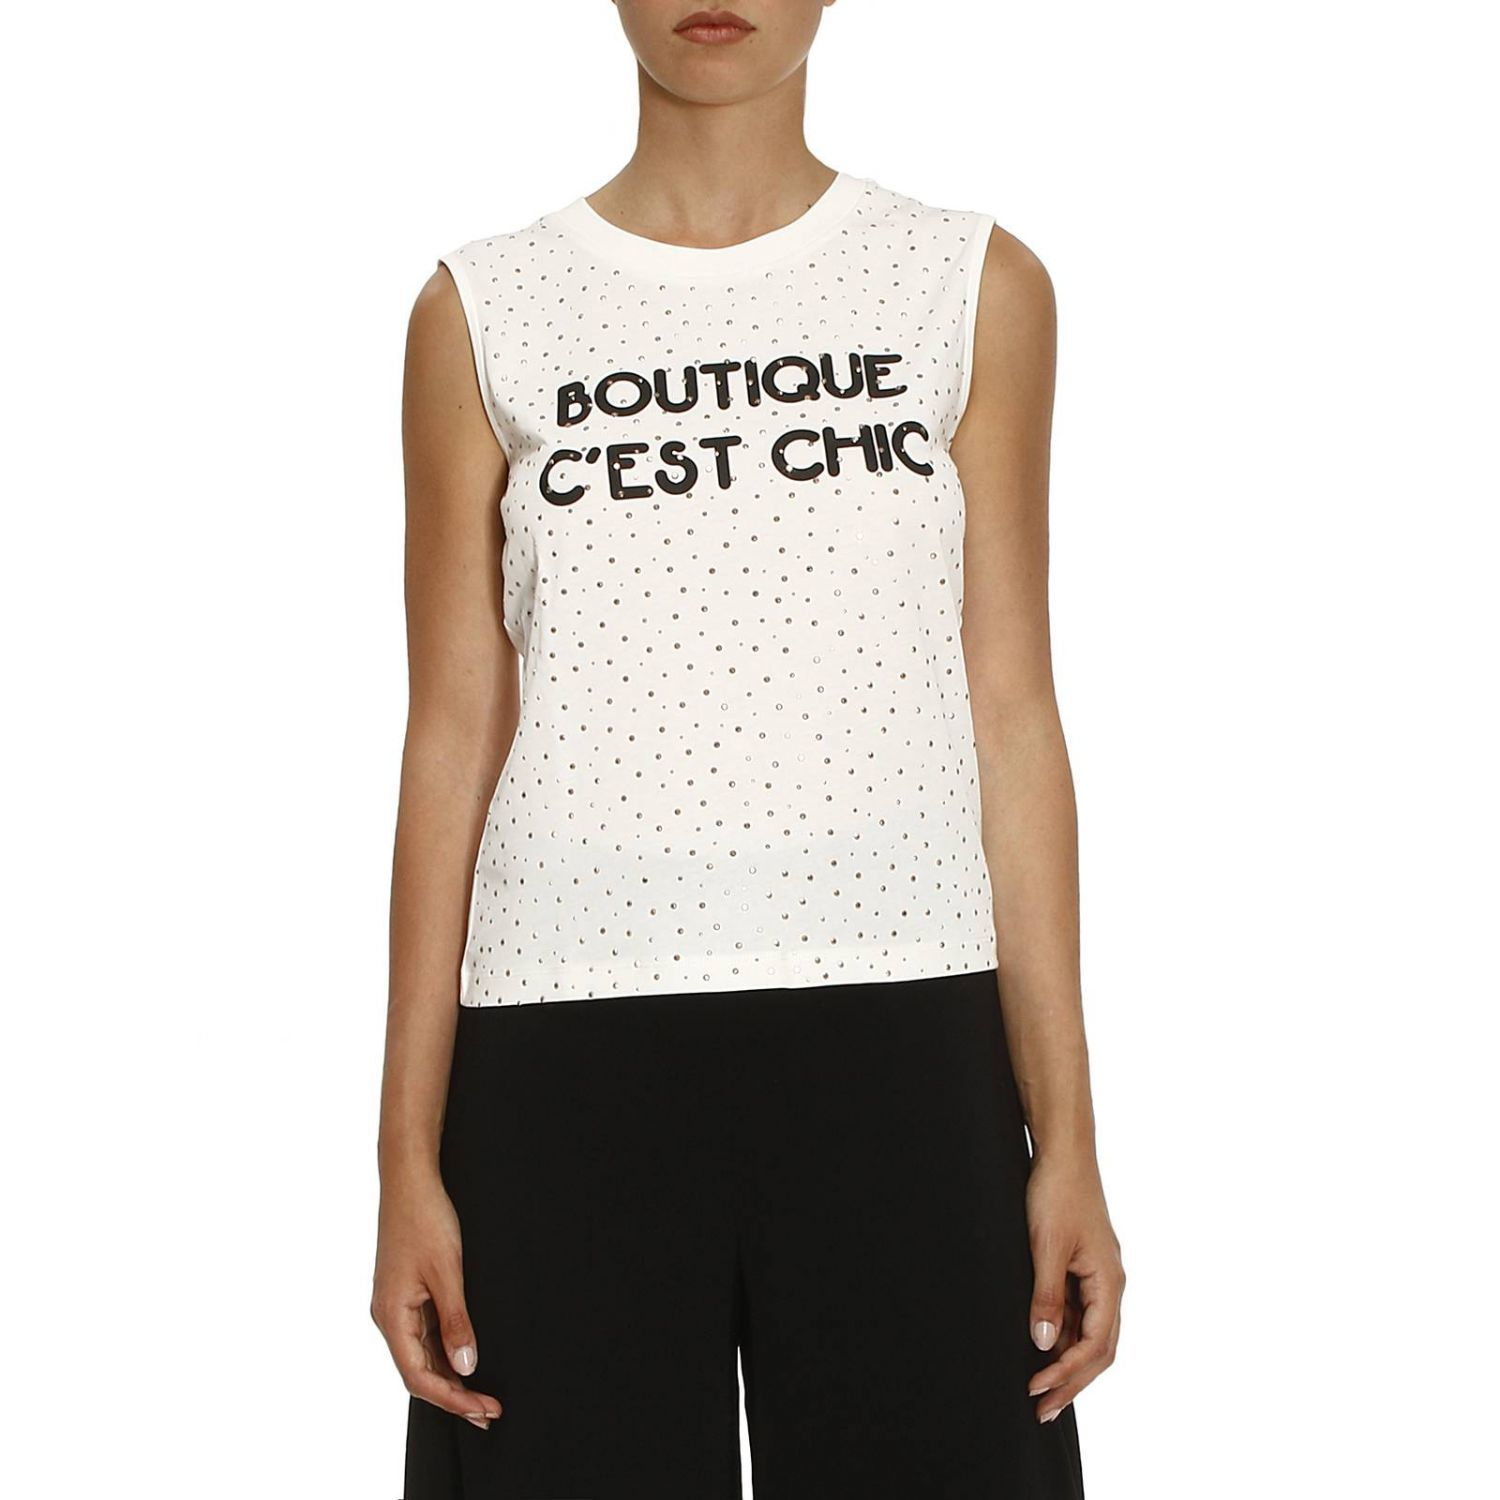 T-shirt Sleeveless Shirt With Multi Rhinestones And Boutique Cest Chic Writing